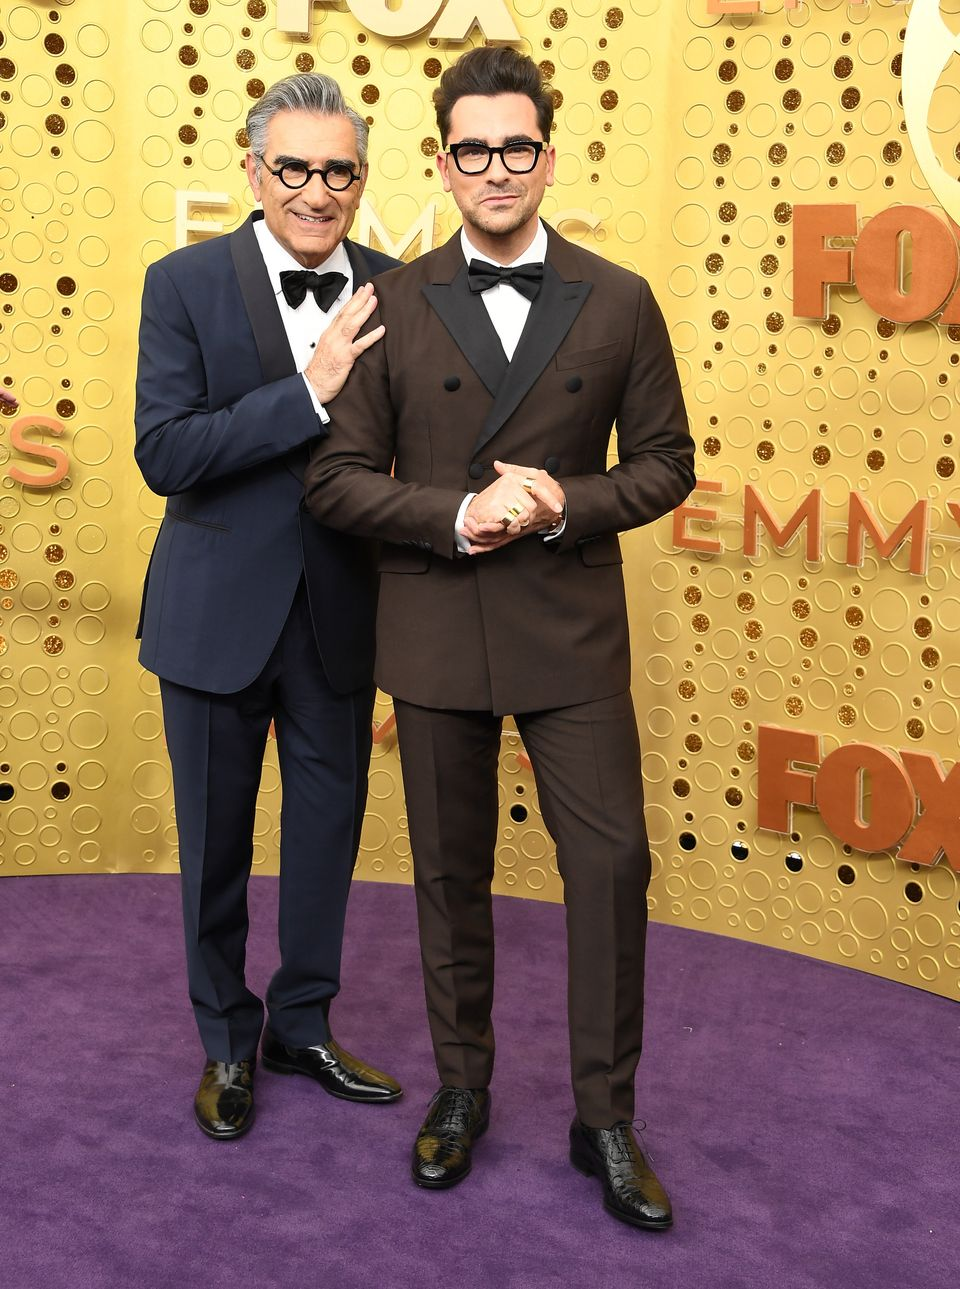 The Style Evolution Of Dan Levy, One Of People's Sexiest Men Alive